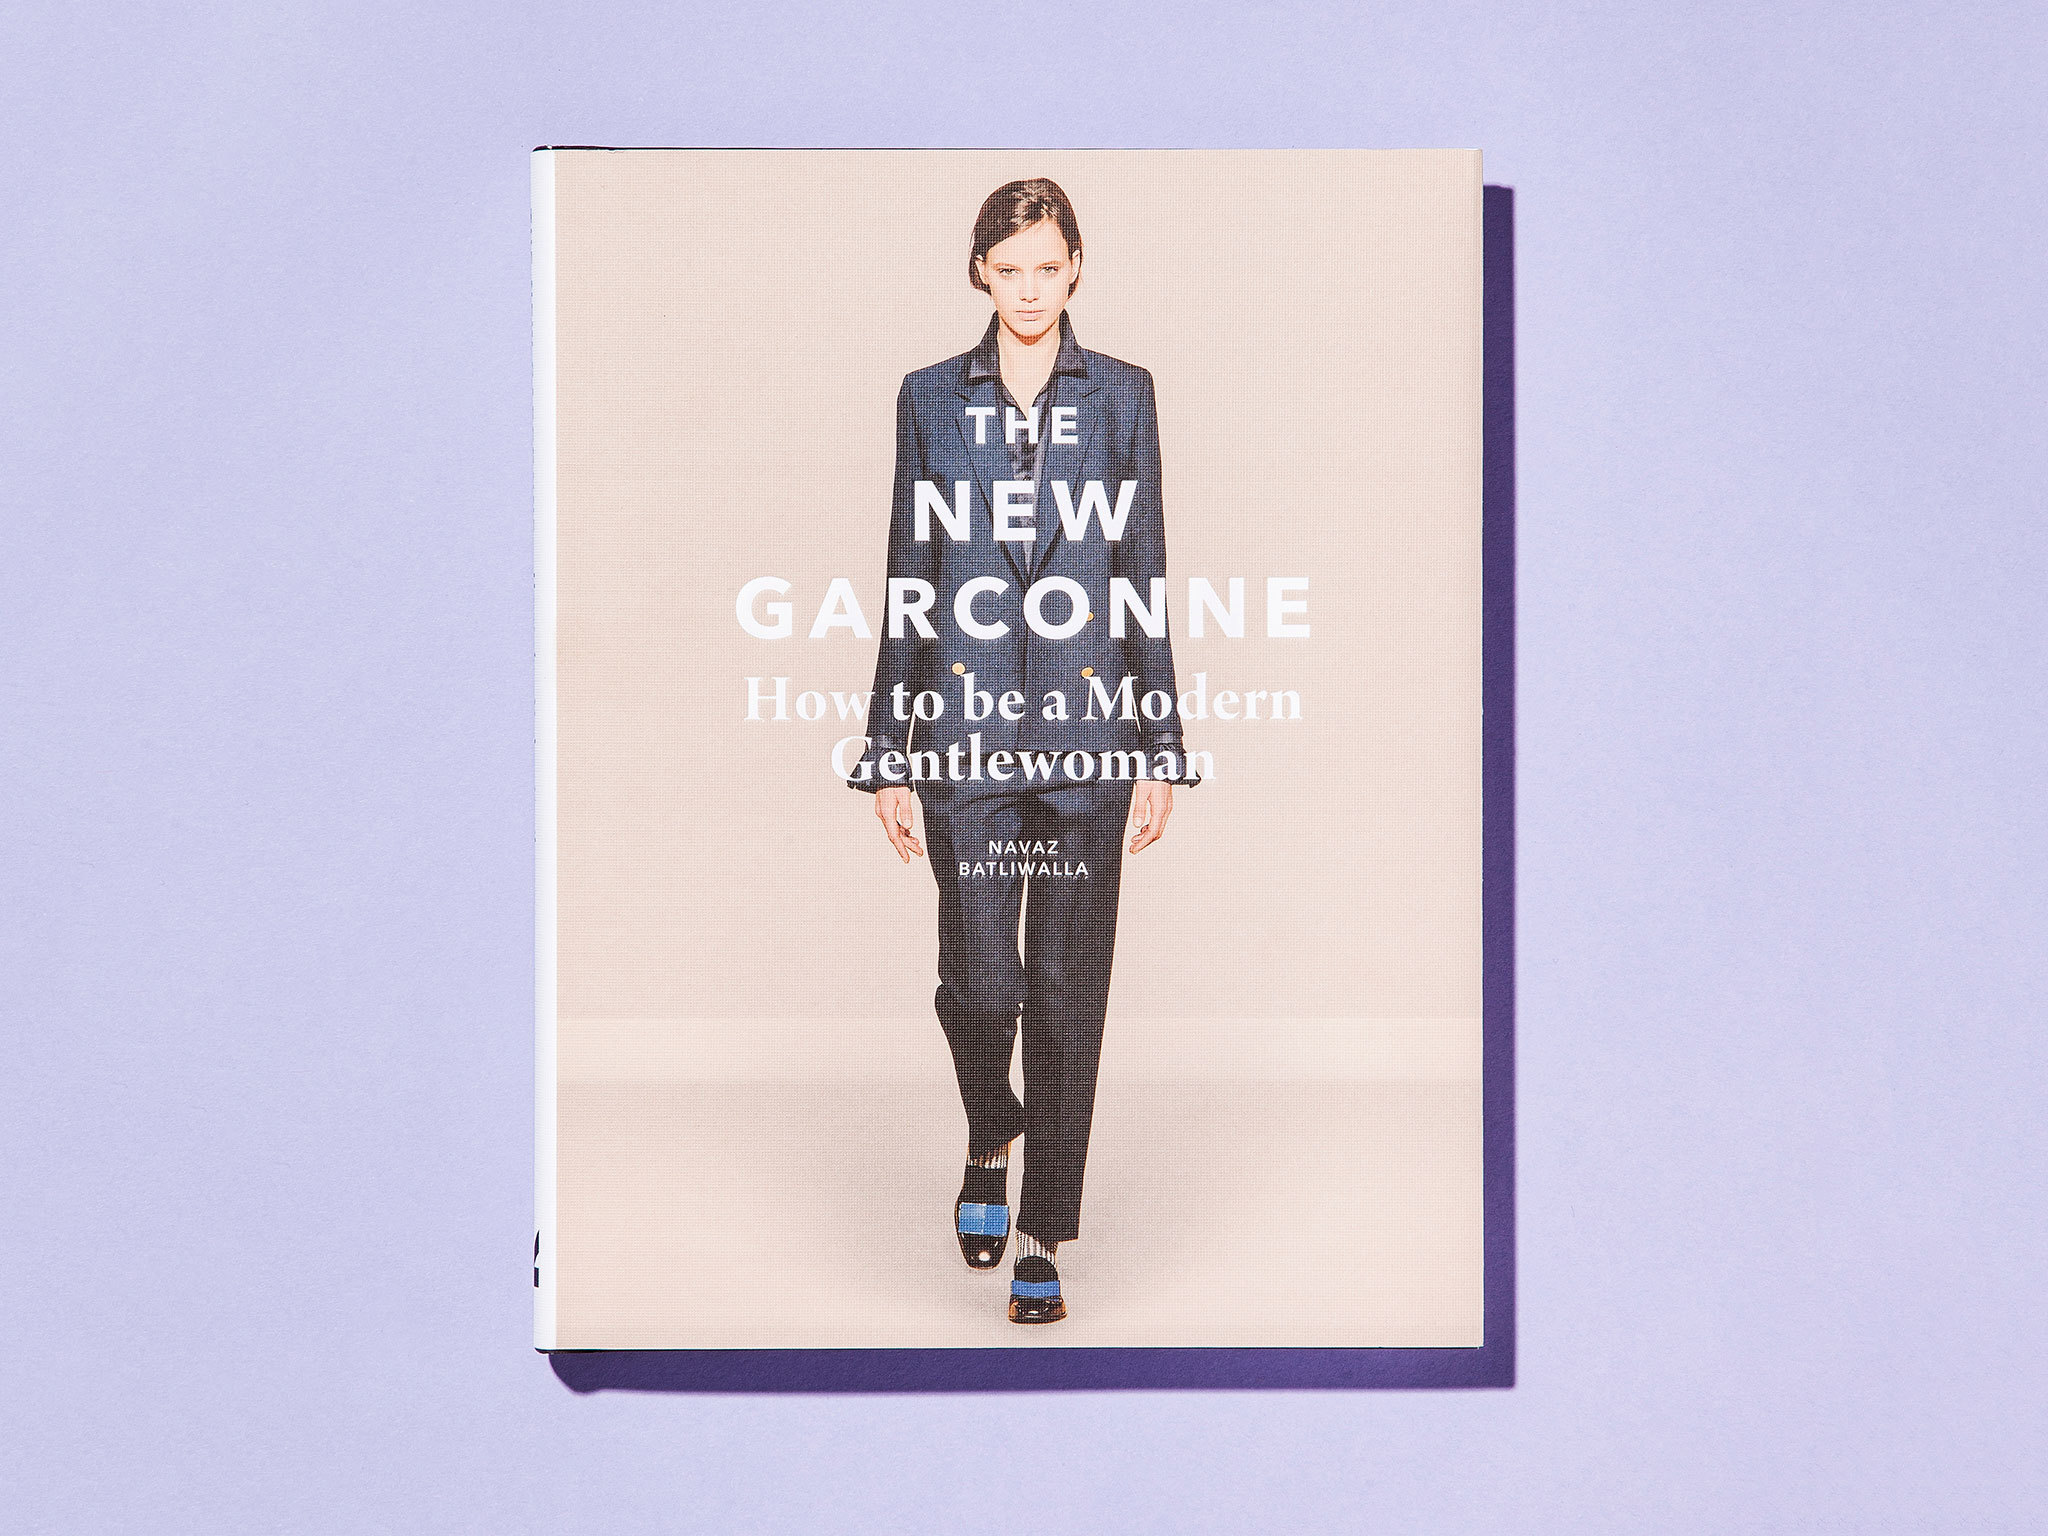 'The New Garconne: How to Be a Gentlewoman' by Navaz Batliwalla